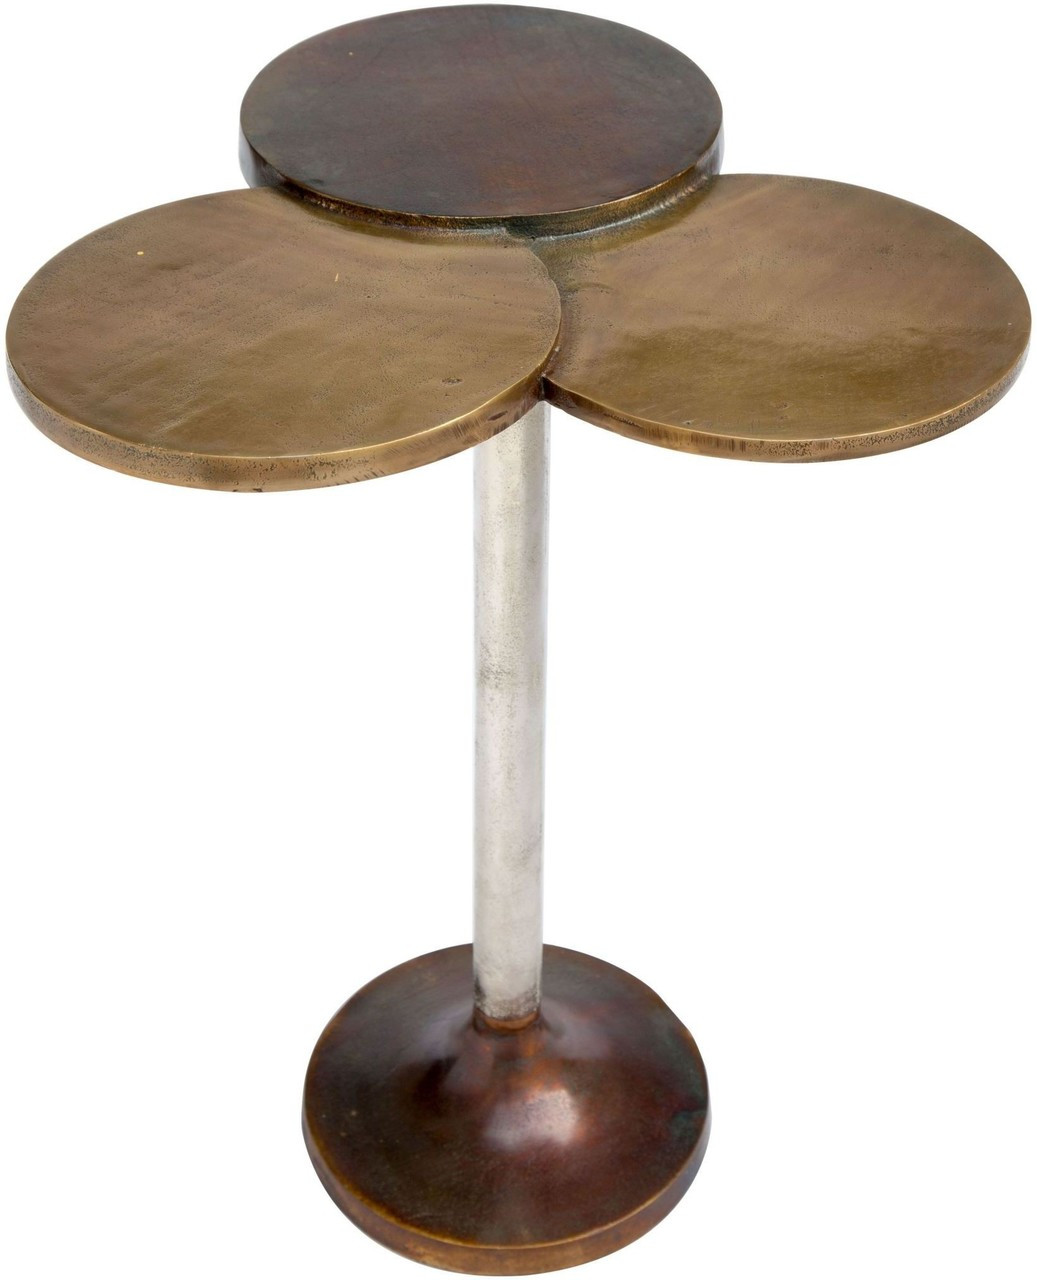 Dundee Accent Table Antique Brass